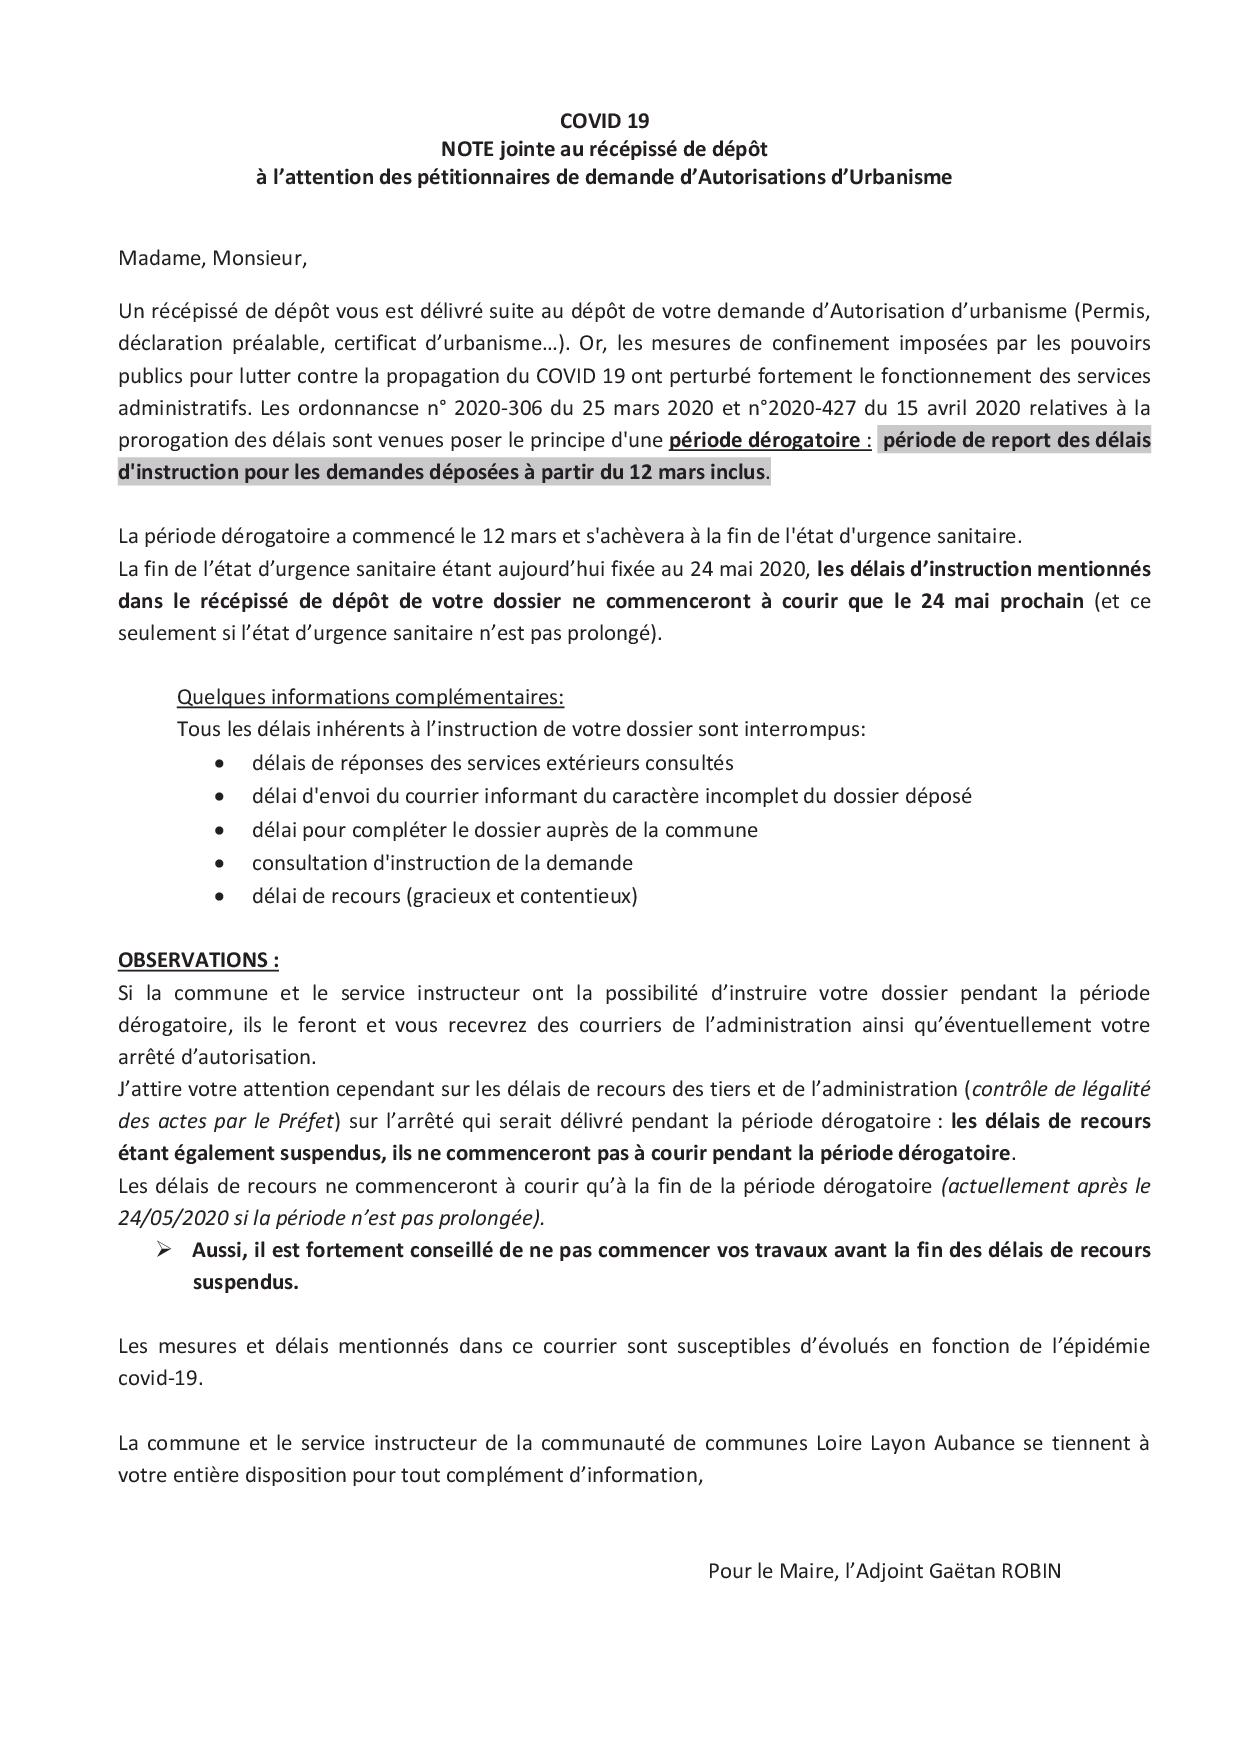 courrier-recepisse-depot-commune-covid-19-1